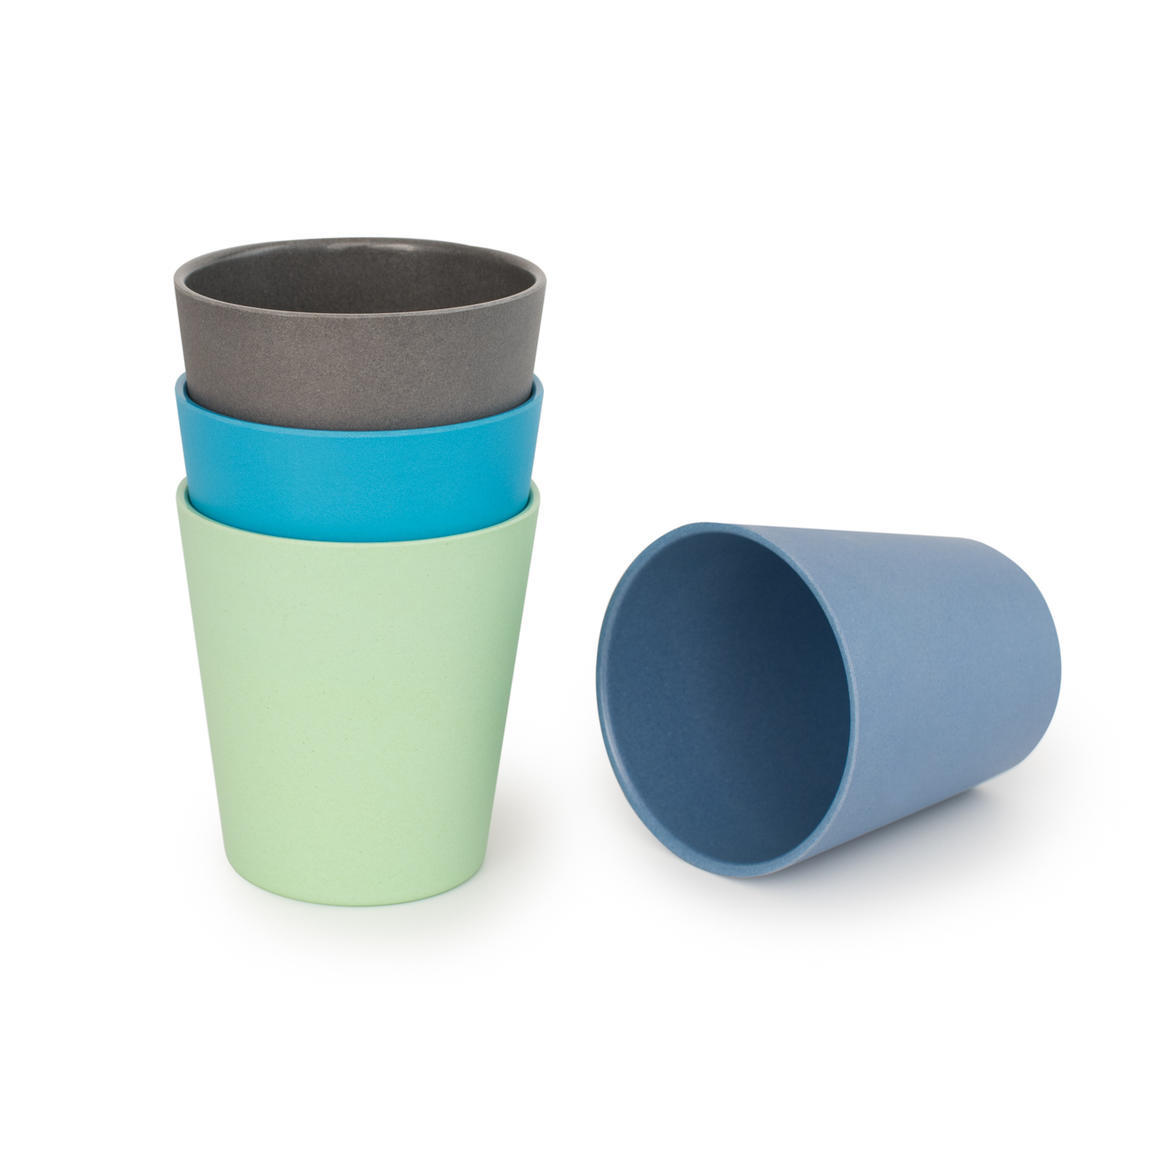 Bamboo 4 Pack Of Cups - Coastal Collection   Trada Marketplace